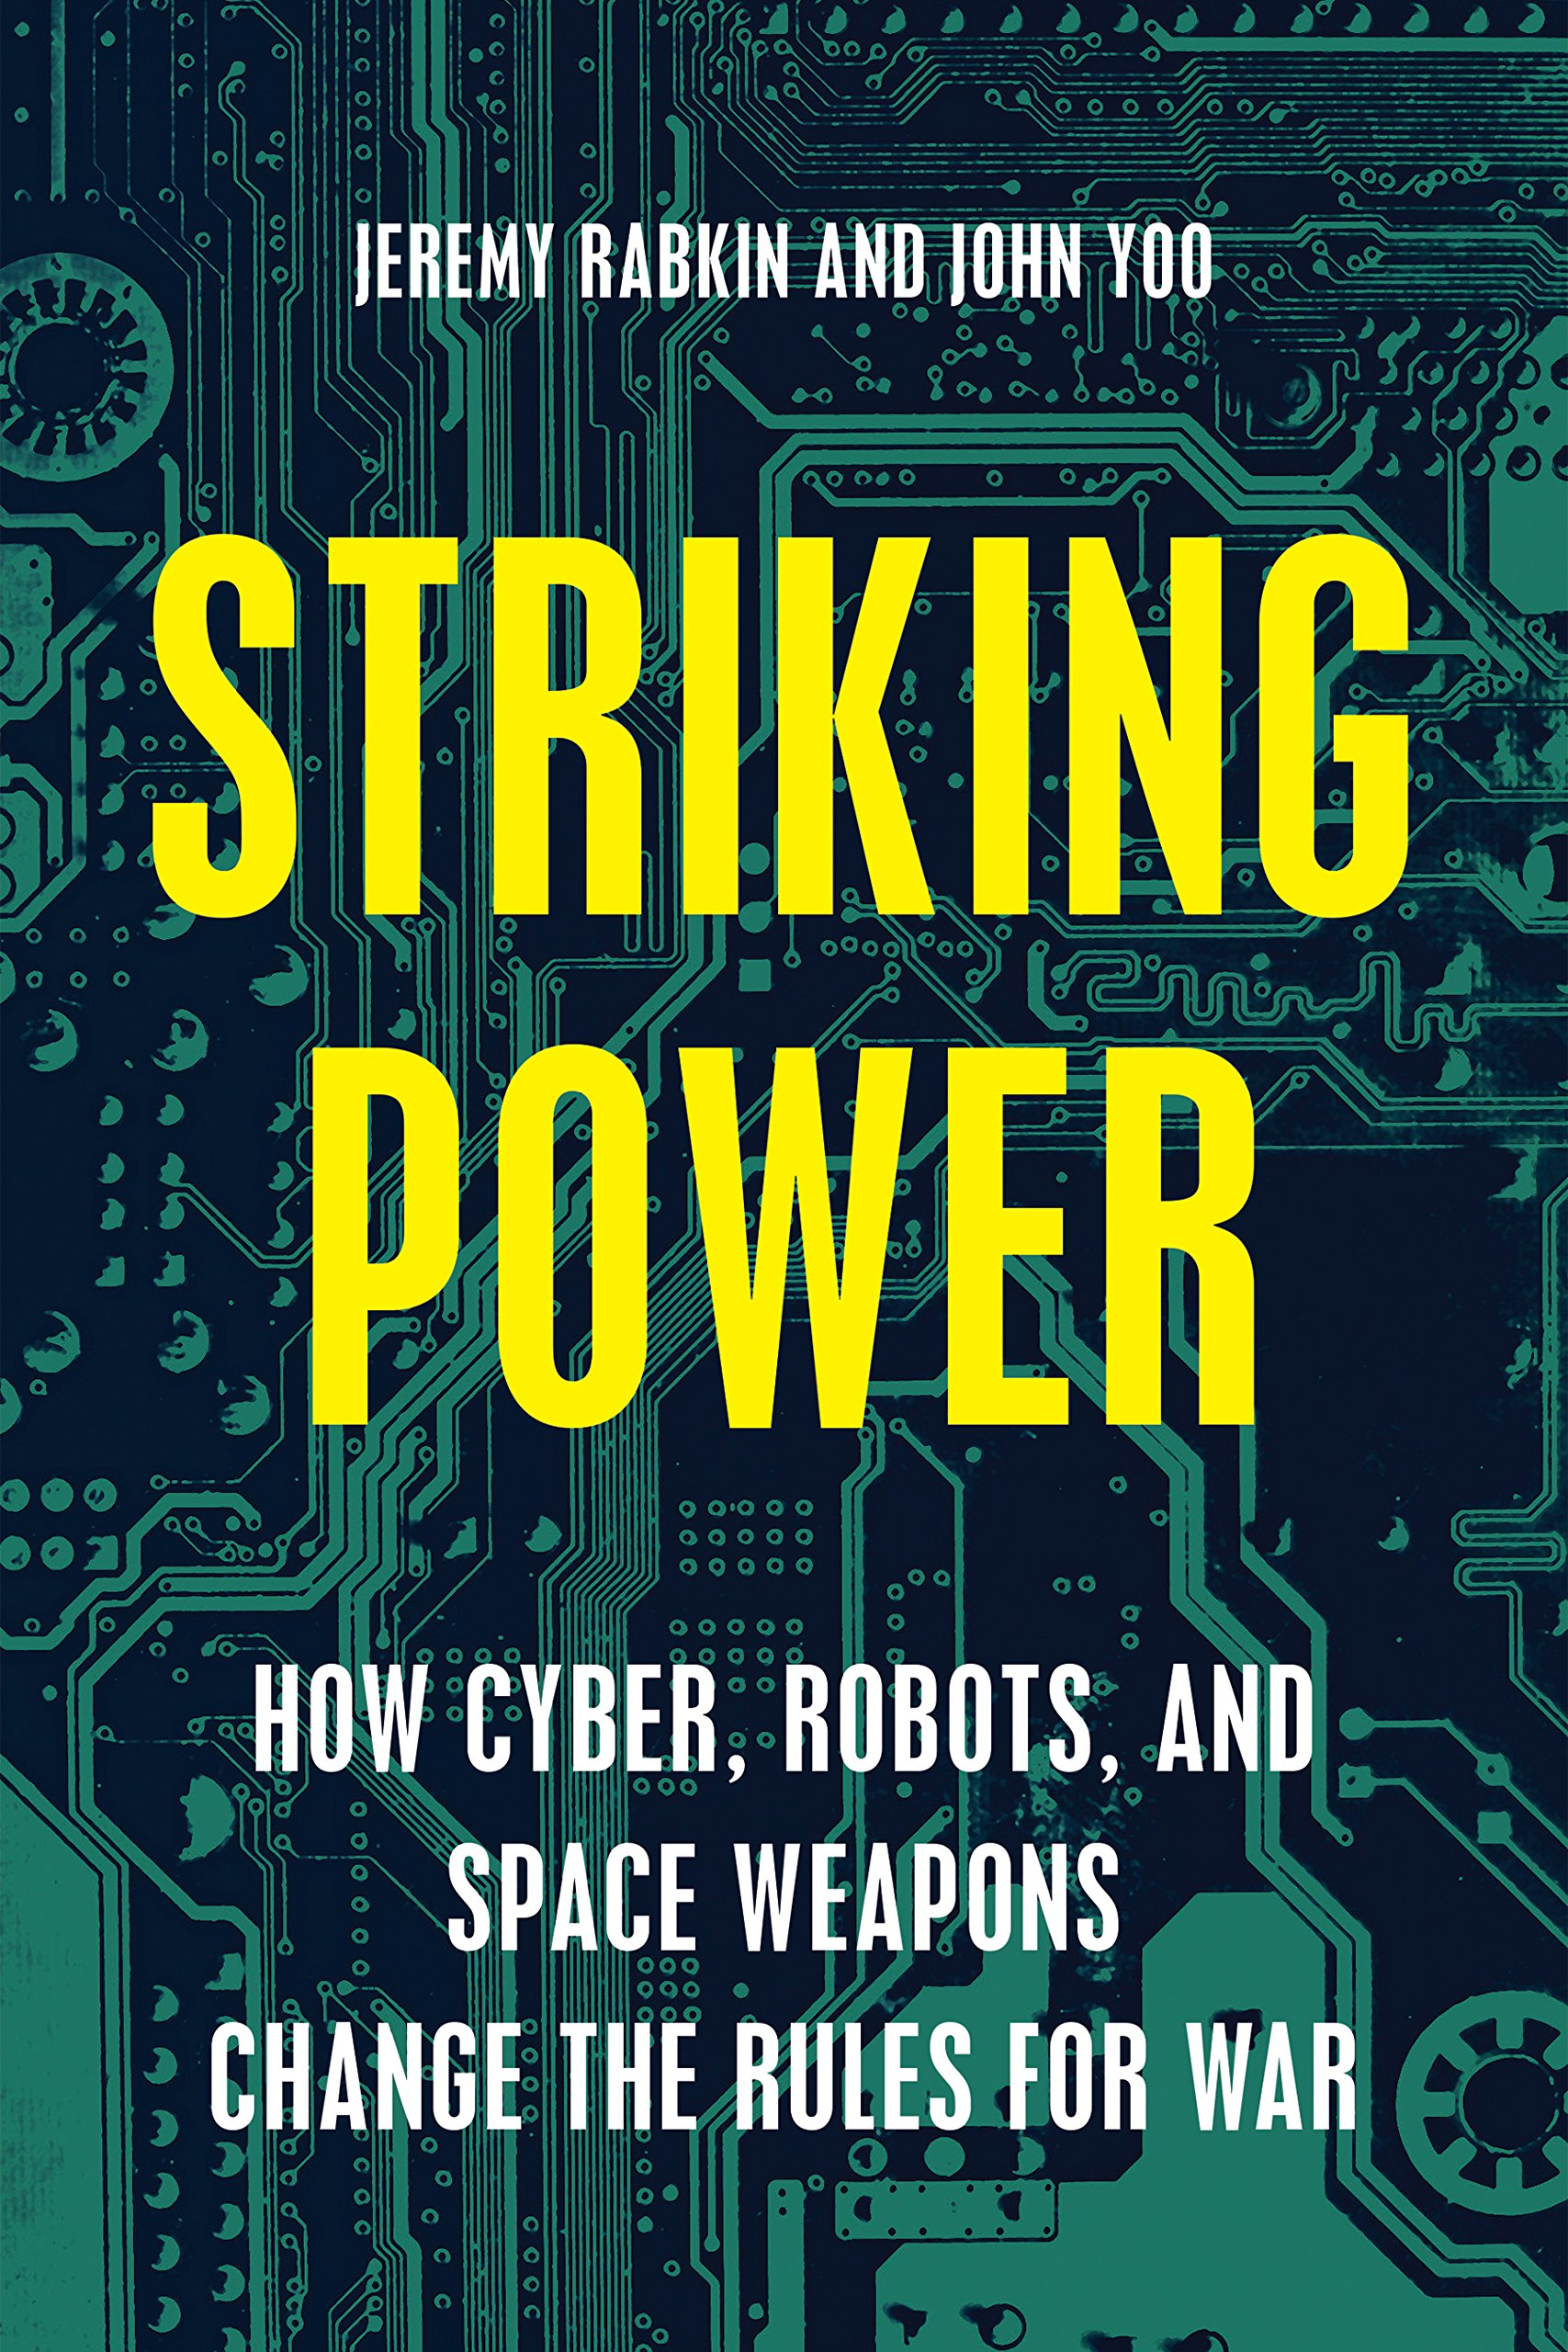 Cyber, Robotic, and Space Weapons in International Conflict